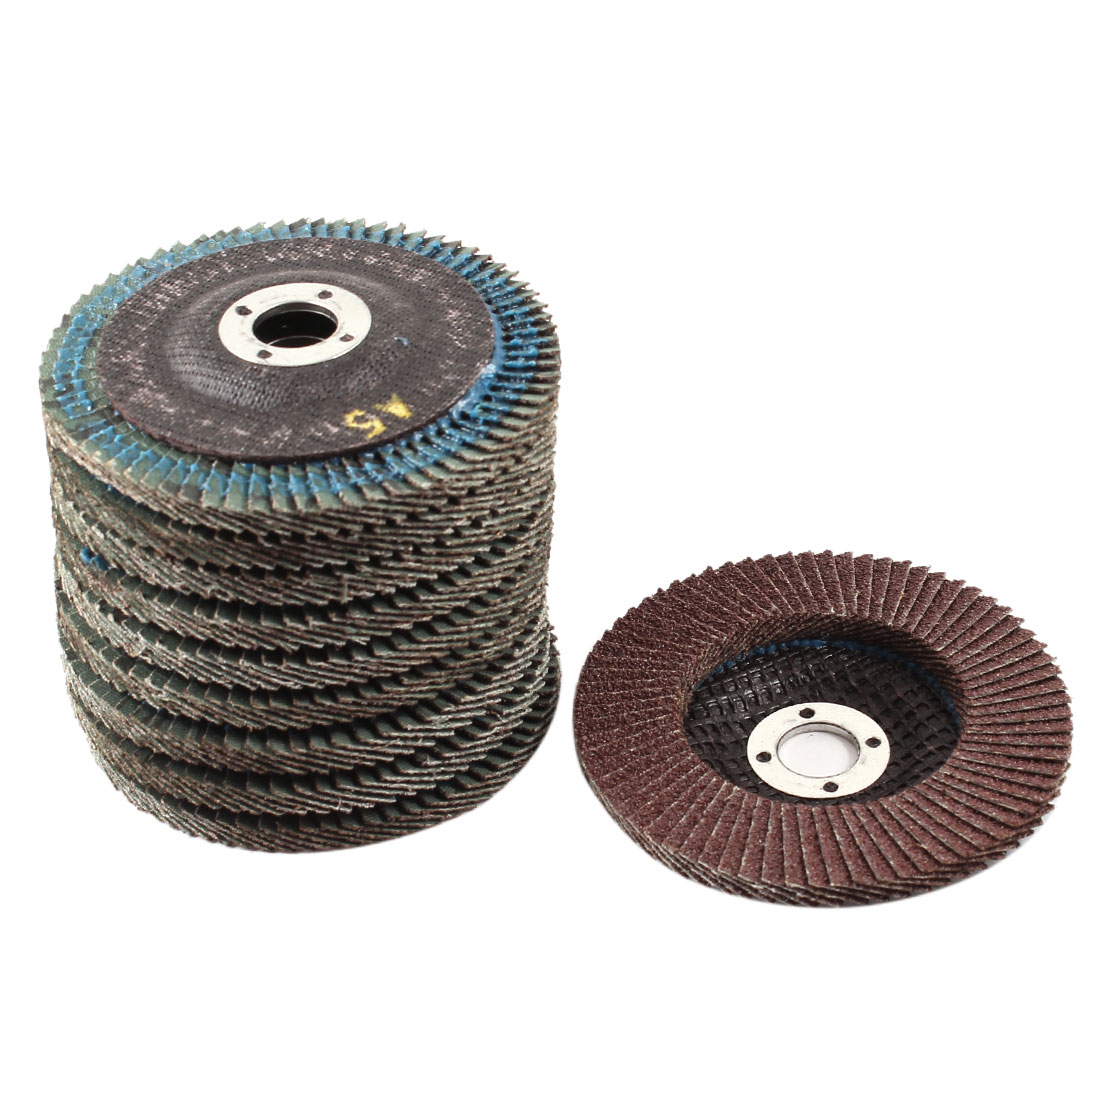 Metal Polishing 100mm Dia 60# Flap Sanding Abrasive Wheels Discs 10Pcs